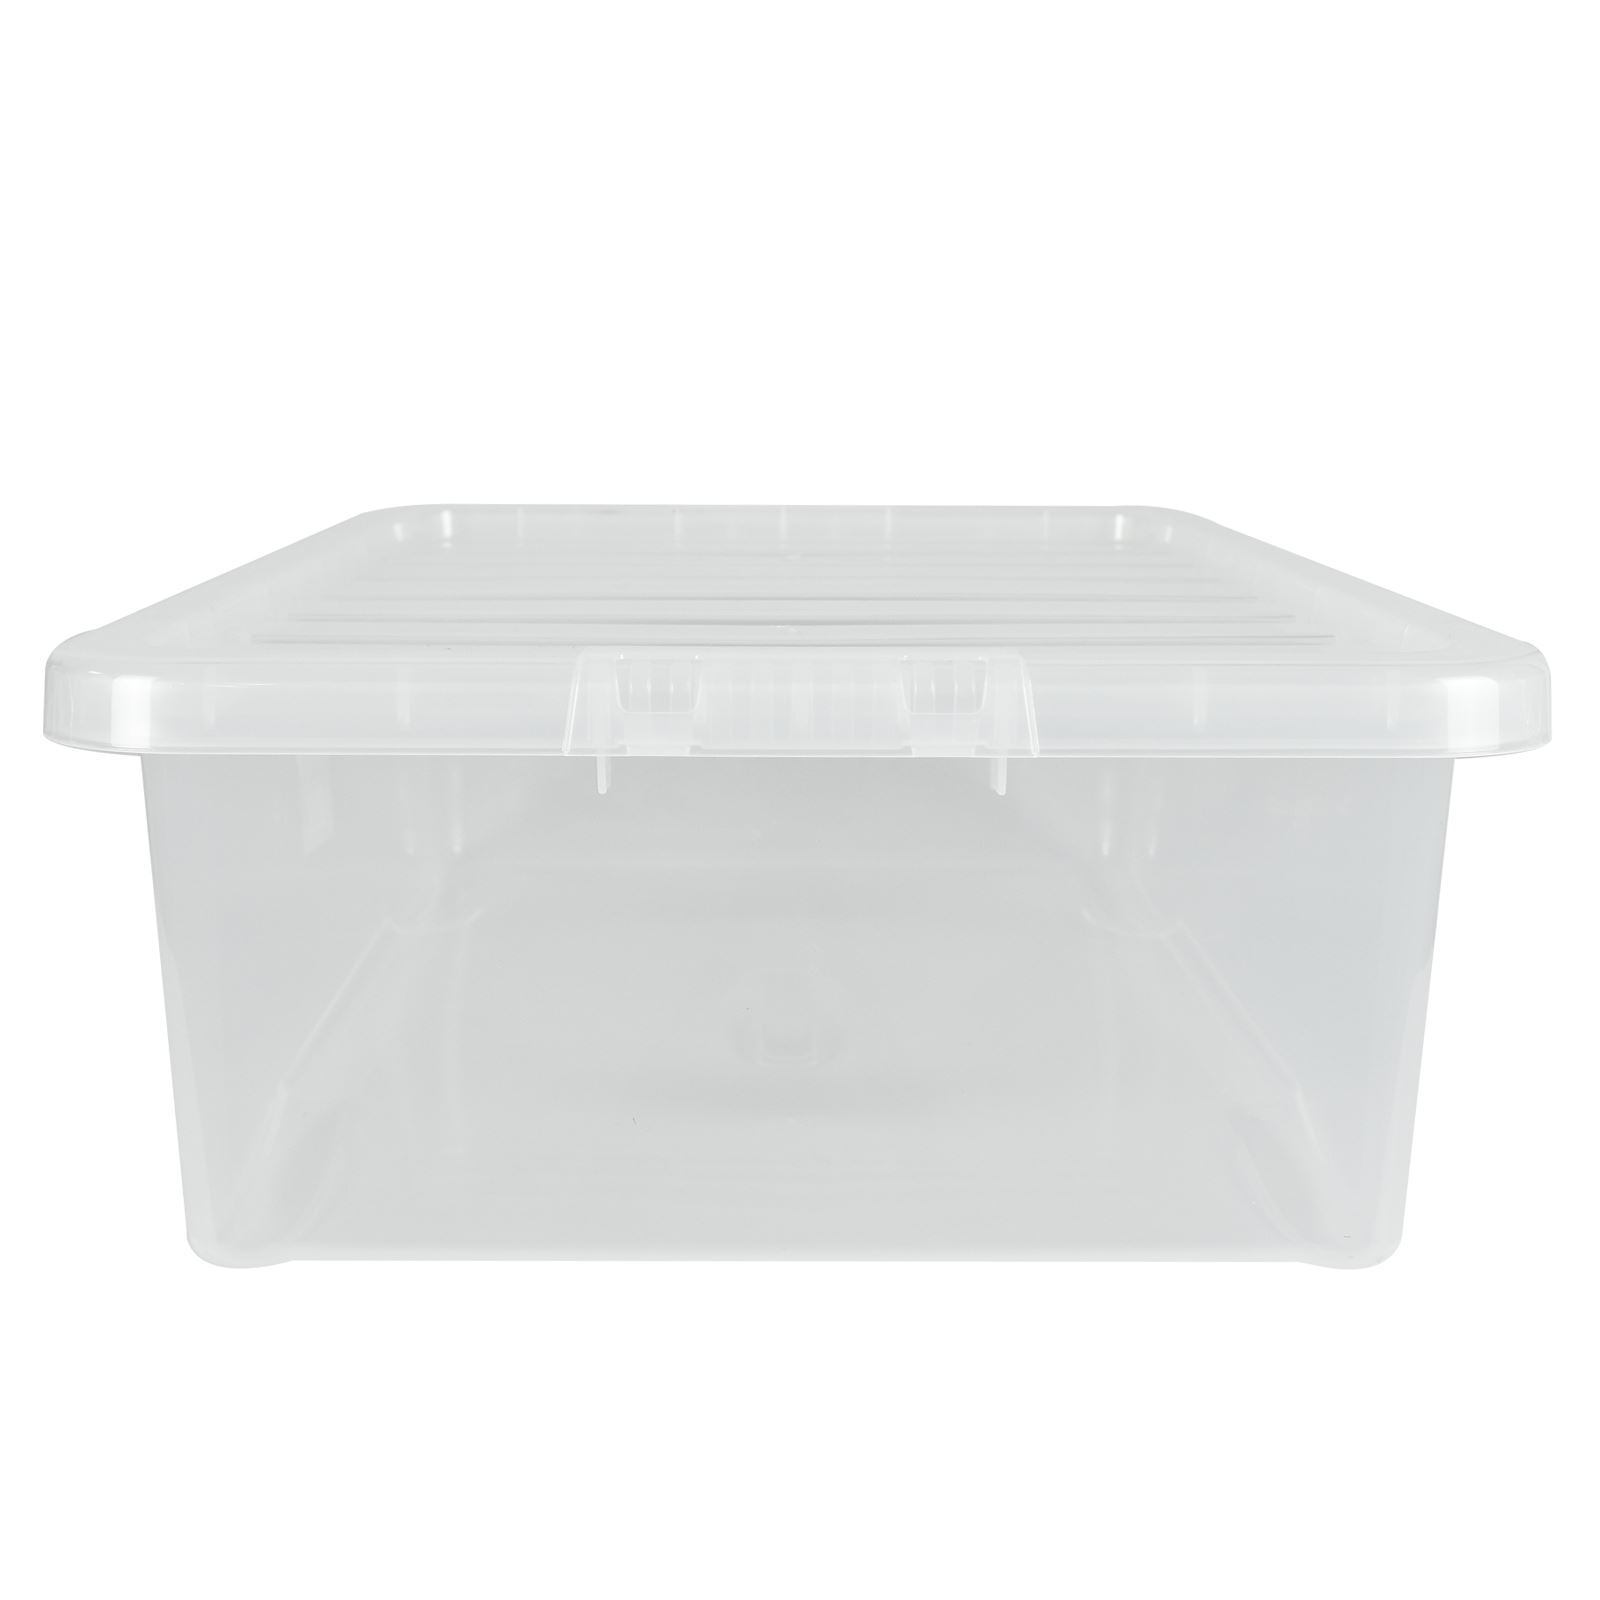 Wham-Crystal-Clear-Plastic-Storage-Box-Secure-Clip-on-Lid-Under-Bed-Space-Save thumbnail 24